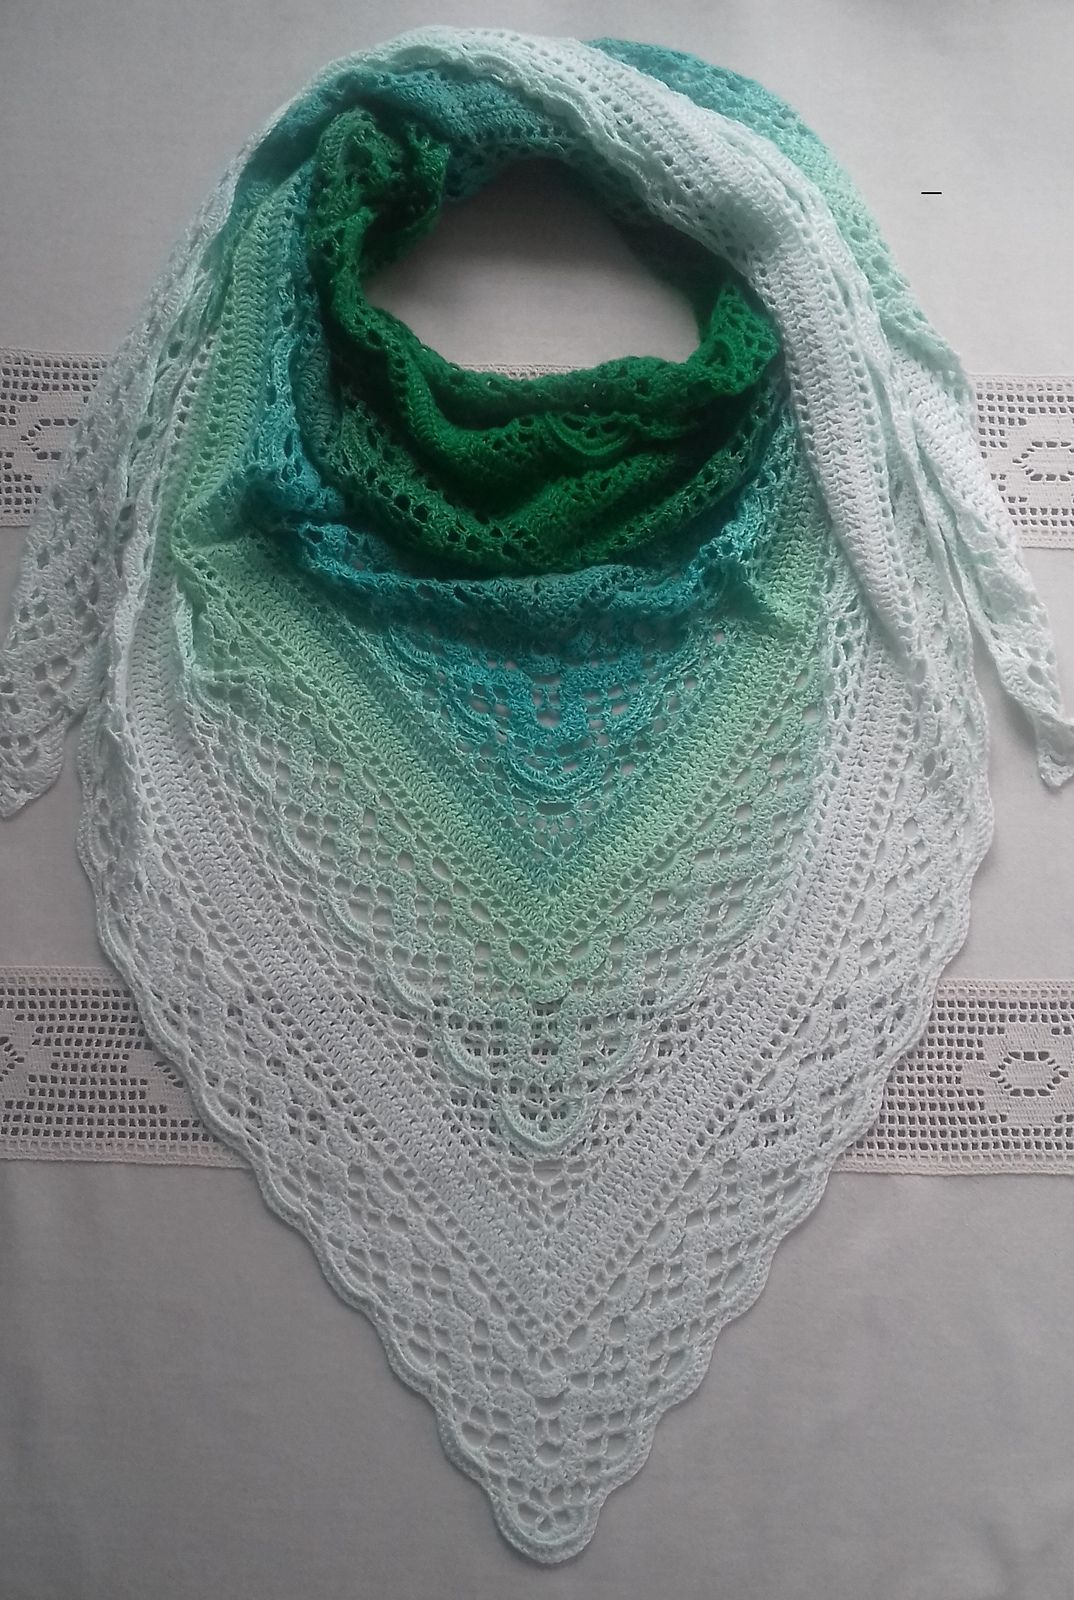 Ravelry: Klaziena Shawl pattern by Kirsten Bishop | Bolero, scarf ...